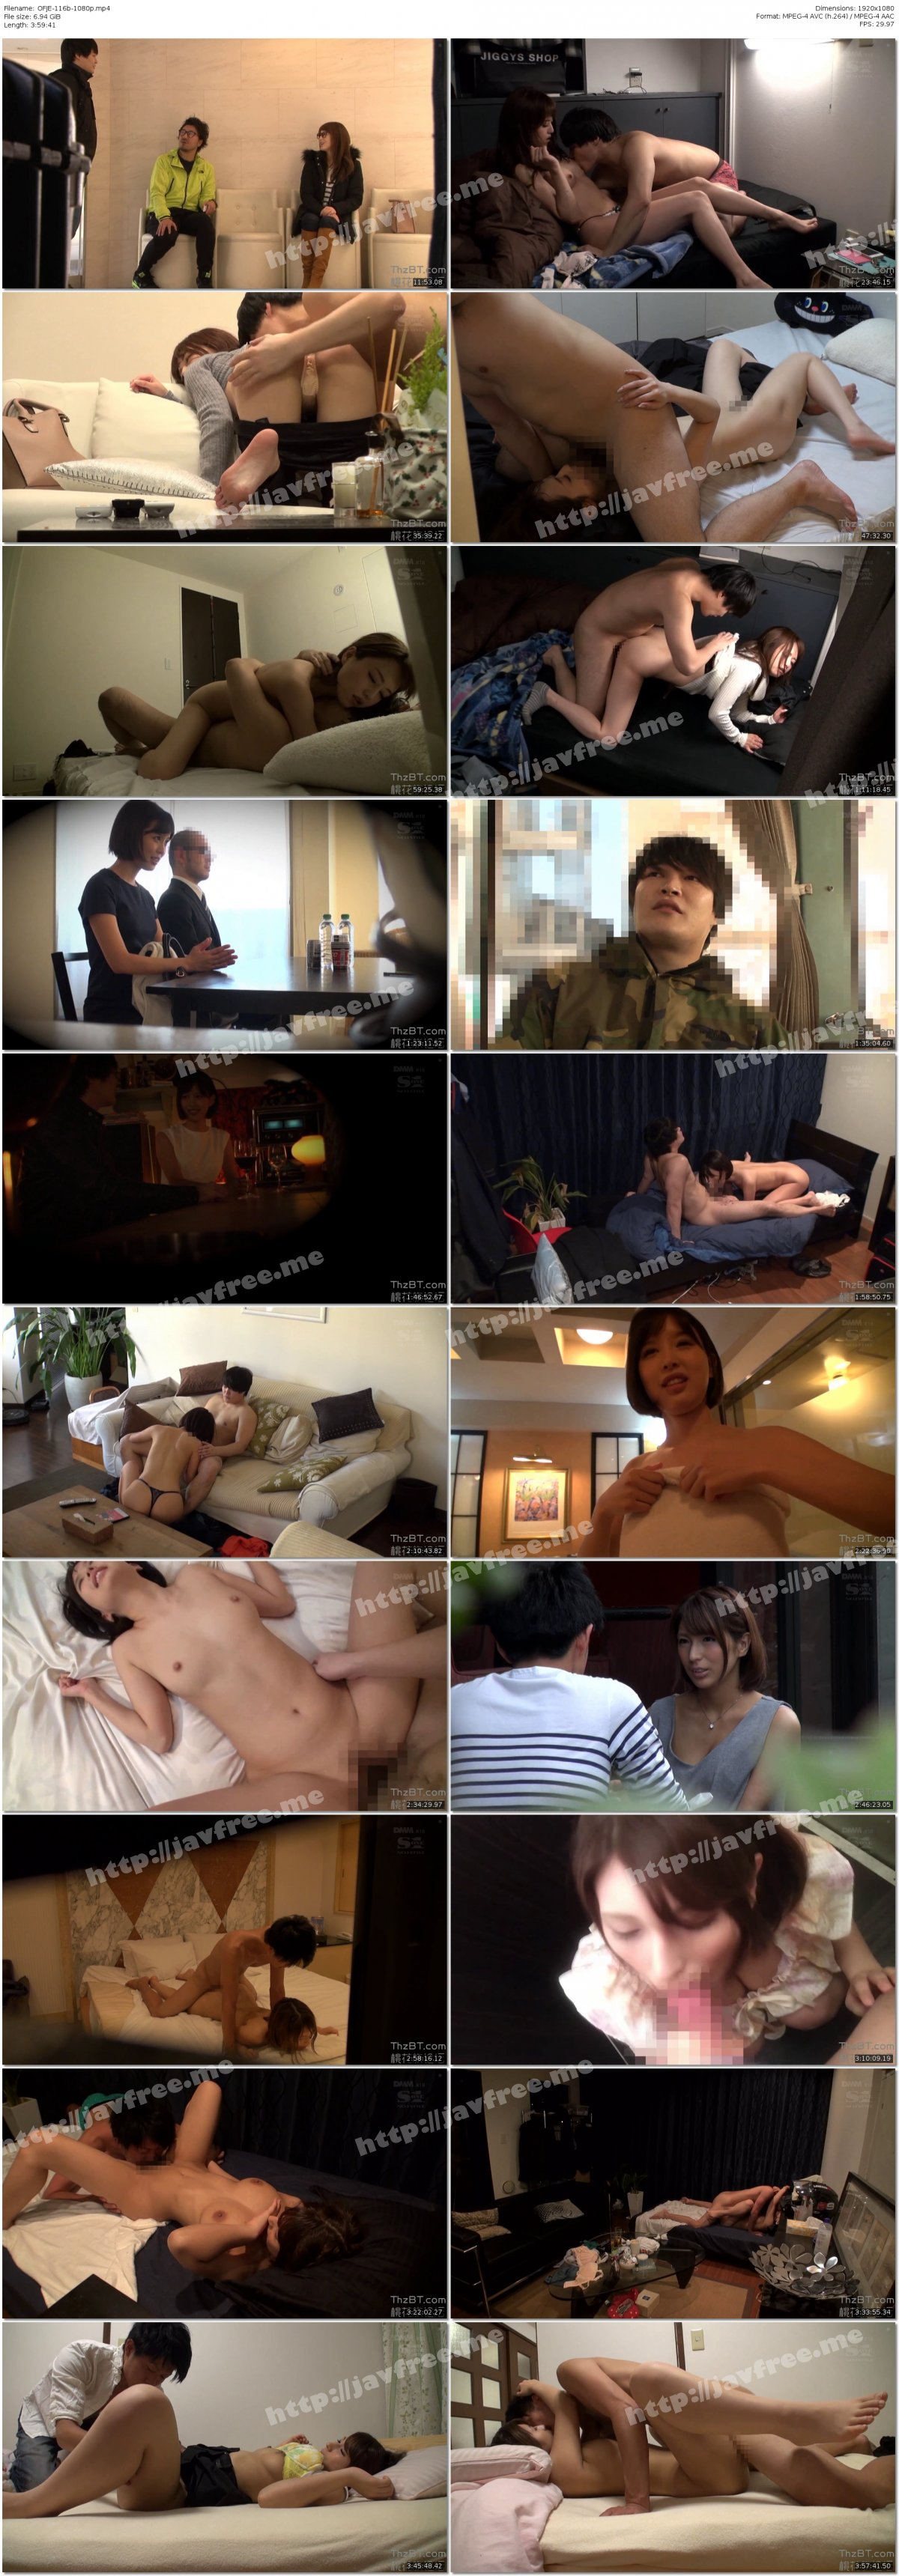 [HD][HXAD-35] 絶対的パンストまにあ 浜崎真緒 - image OFJE-116b-1080p on http://javcc.com